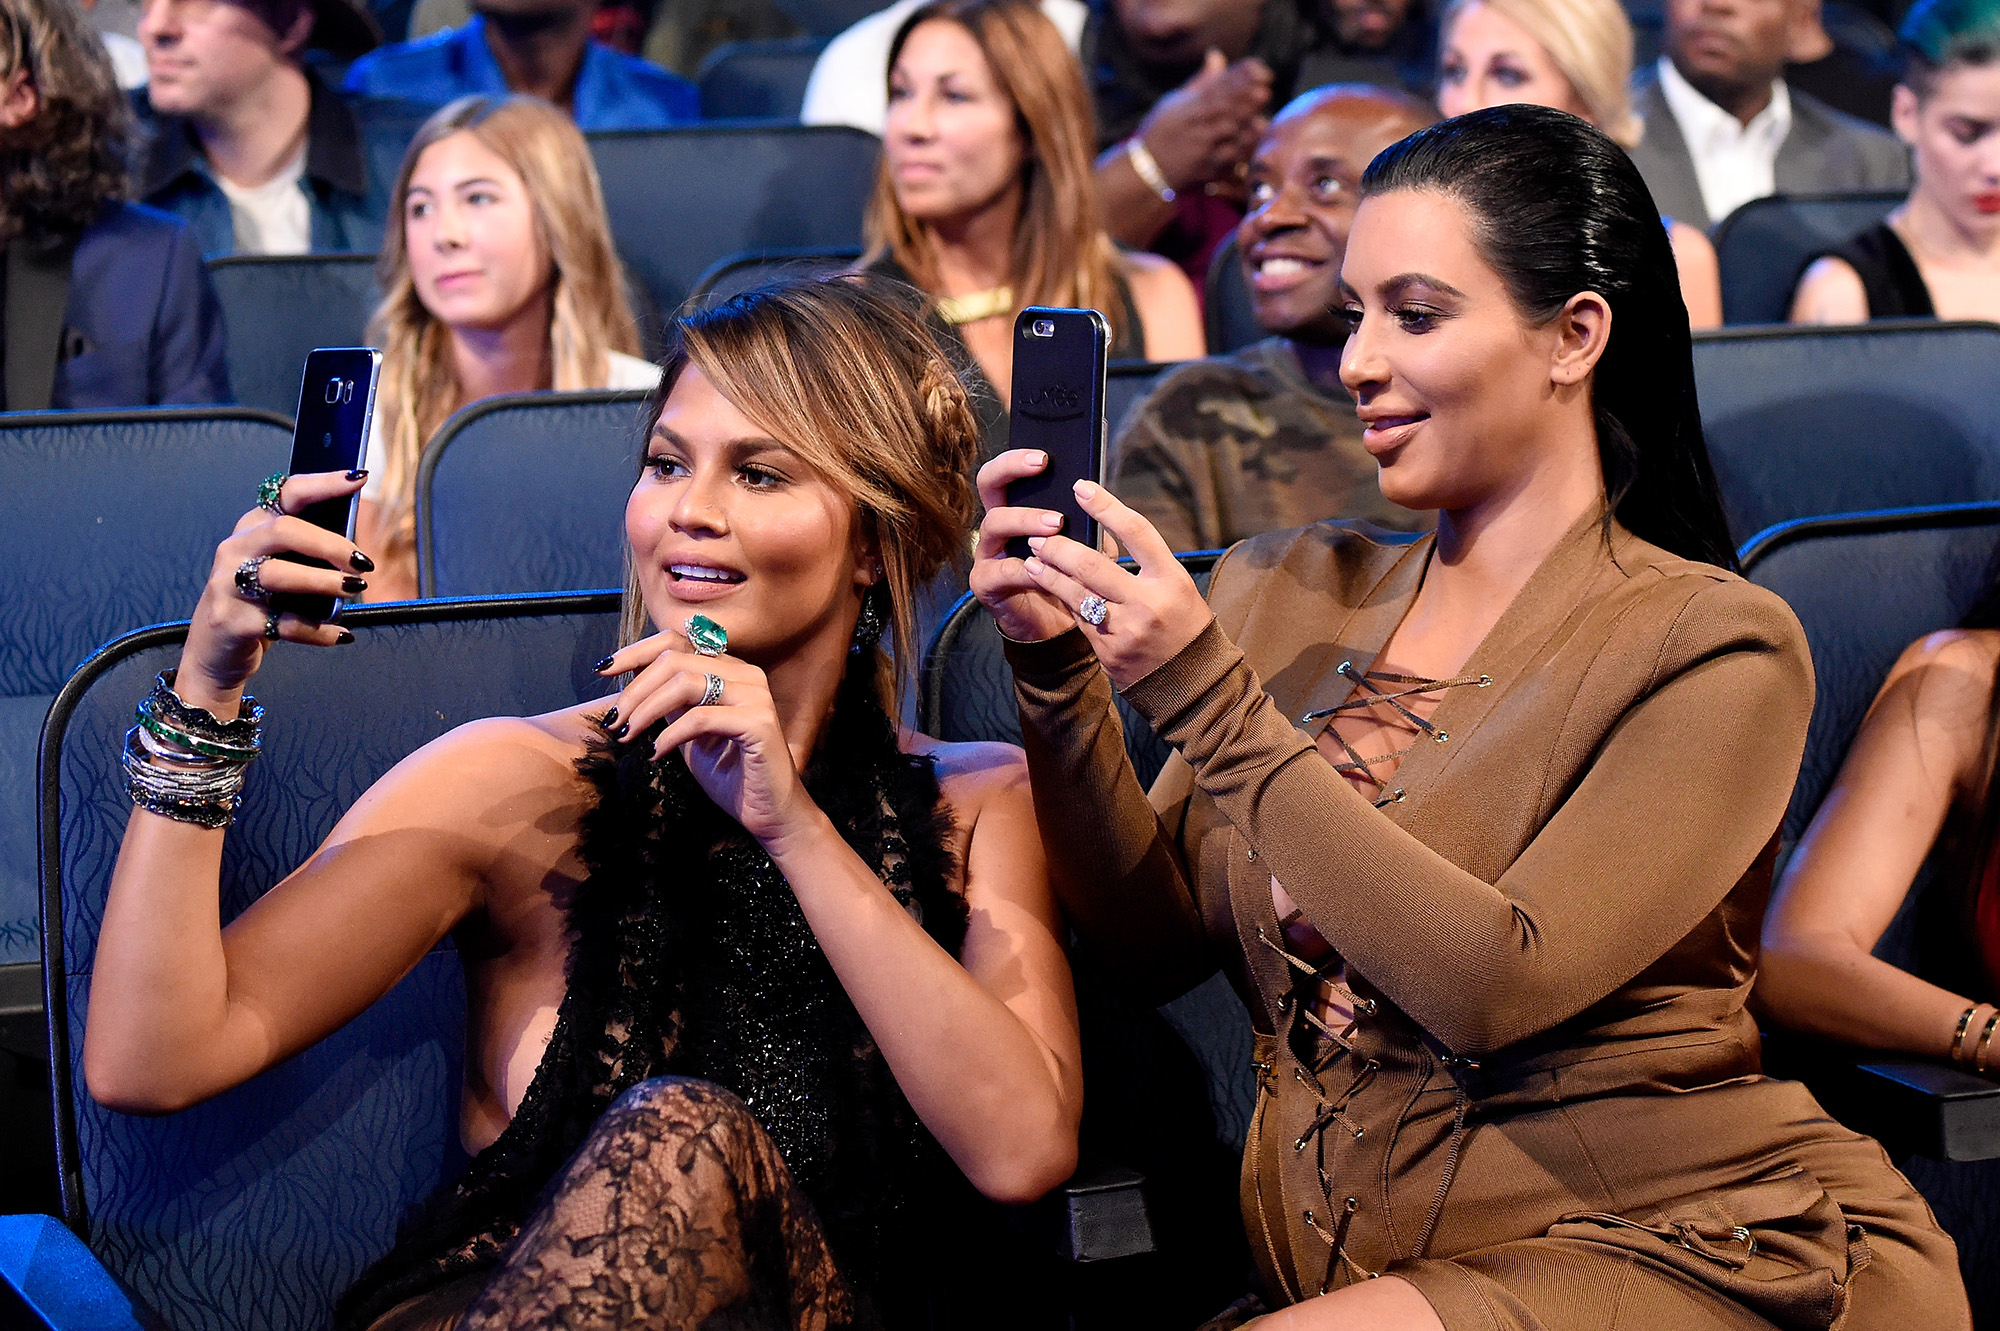 Chrissy Teigen and Kim Kardashian West attend the 2015 MTV Video Music Awards at Microsoft Theater on August 30, 2015 in Los Angeles, California.  (Photo by Kevin Mazur/MTV1415/WireImage)